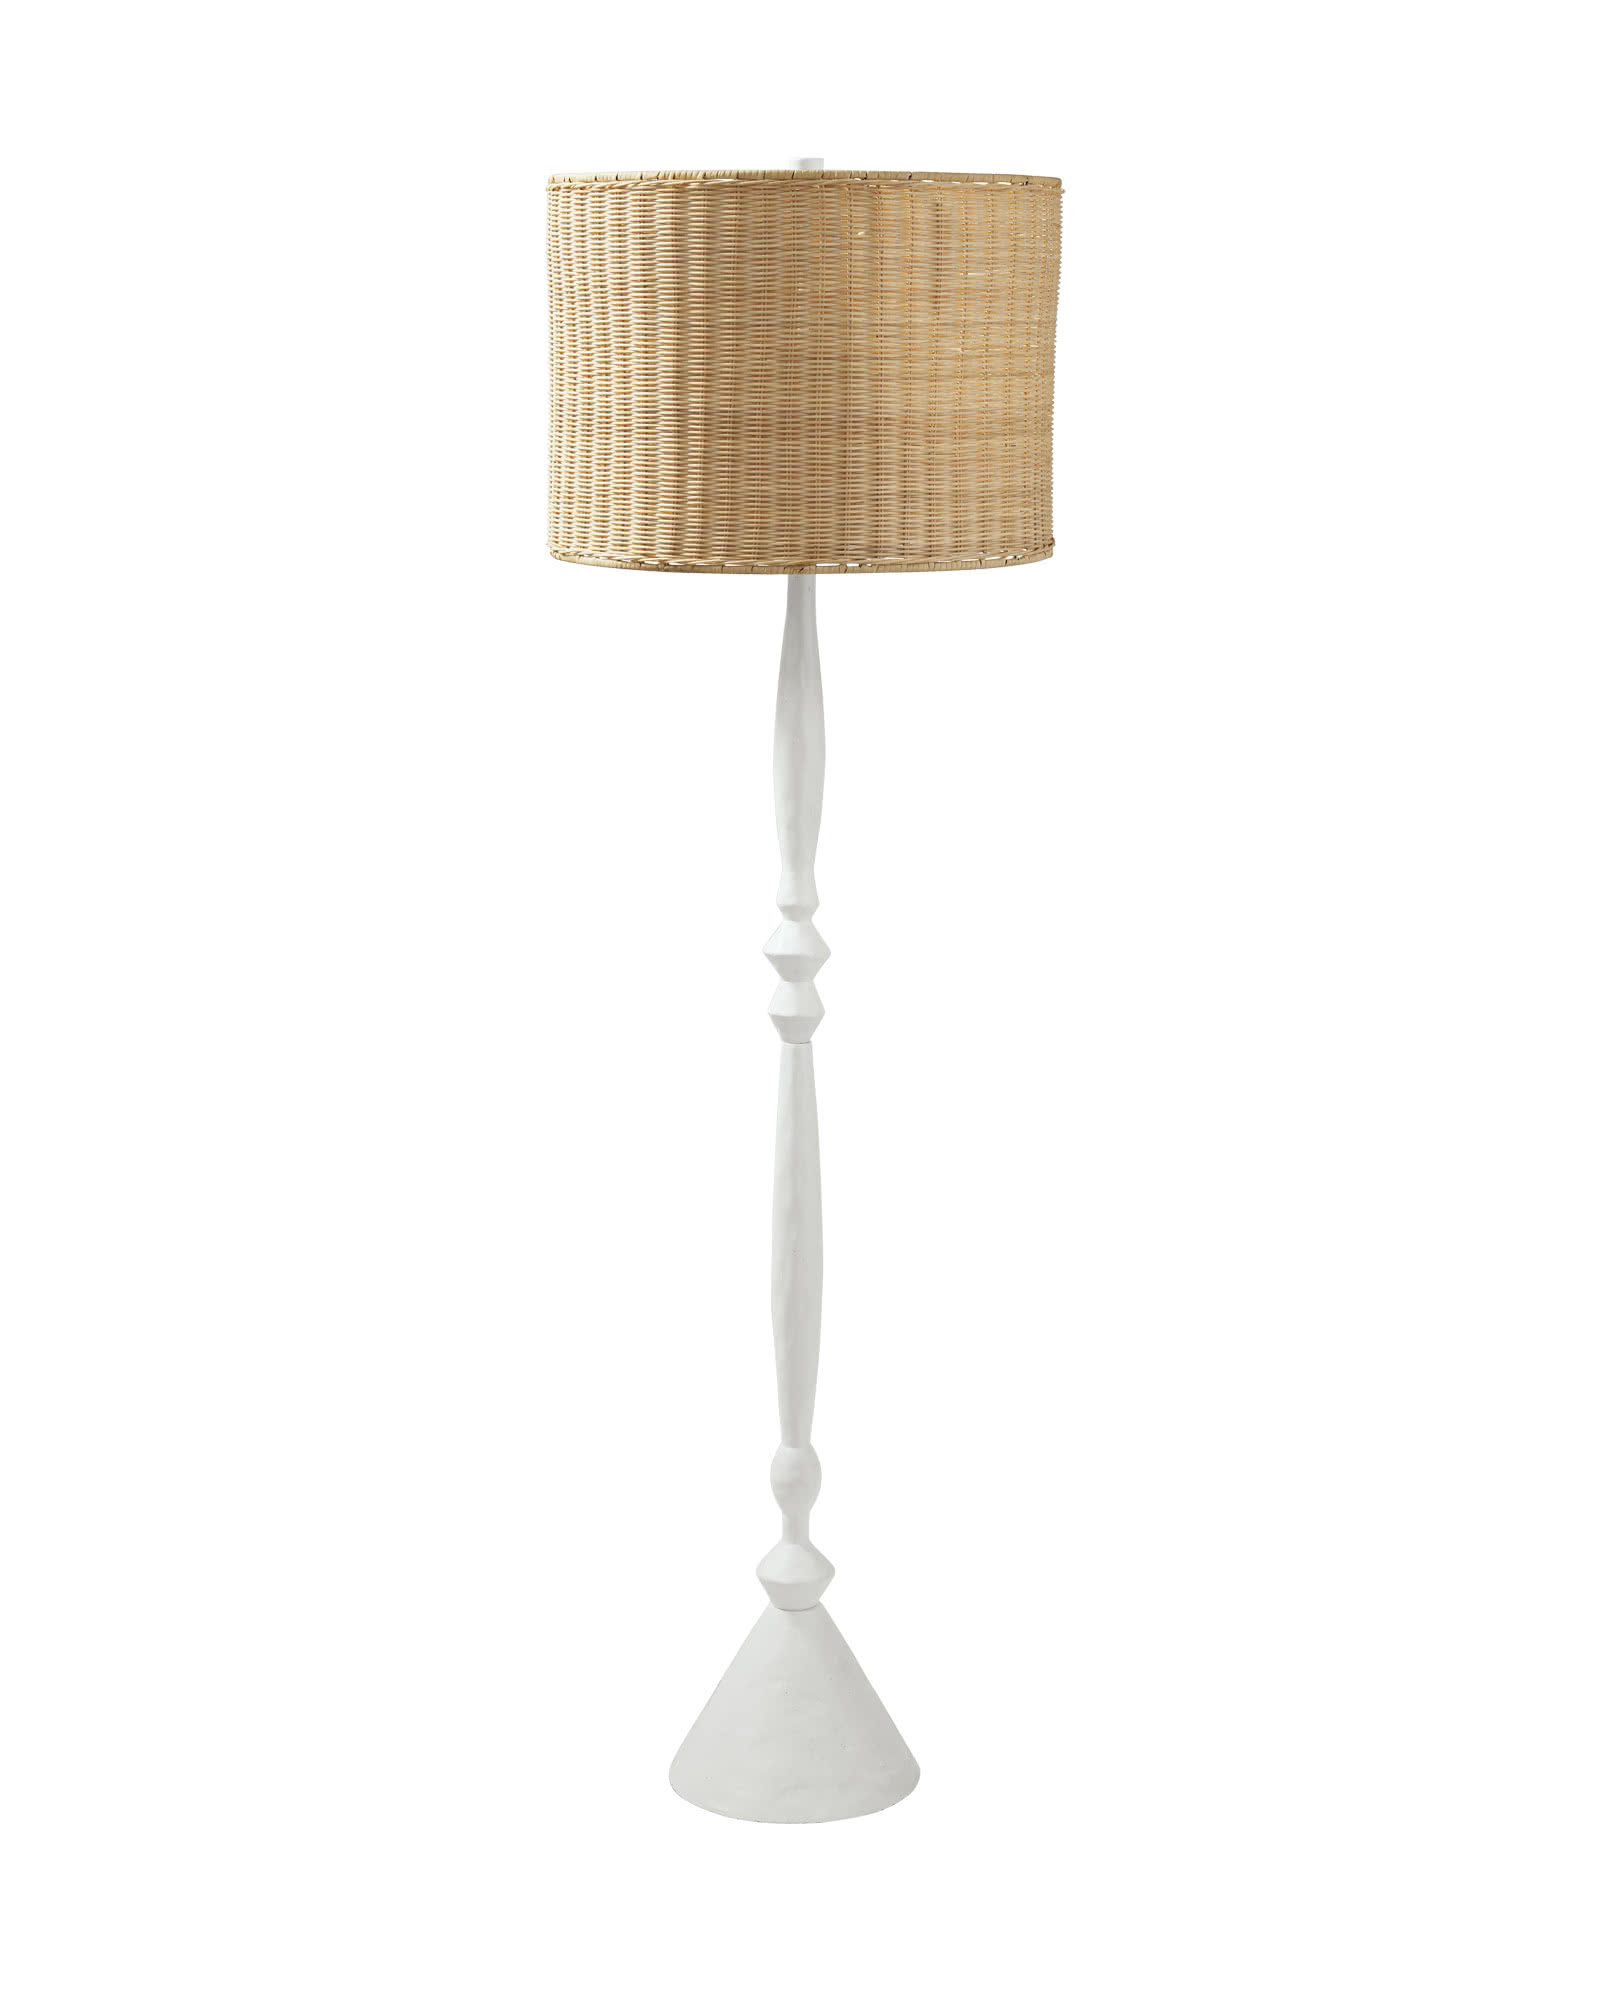 Brighton Floor Lamp, Wicker